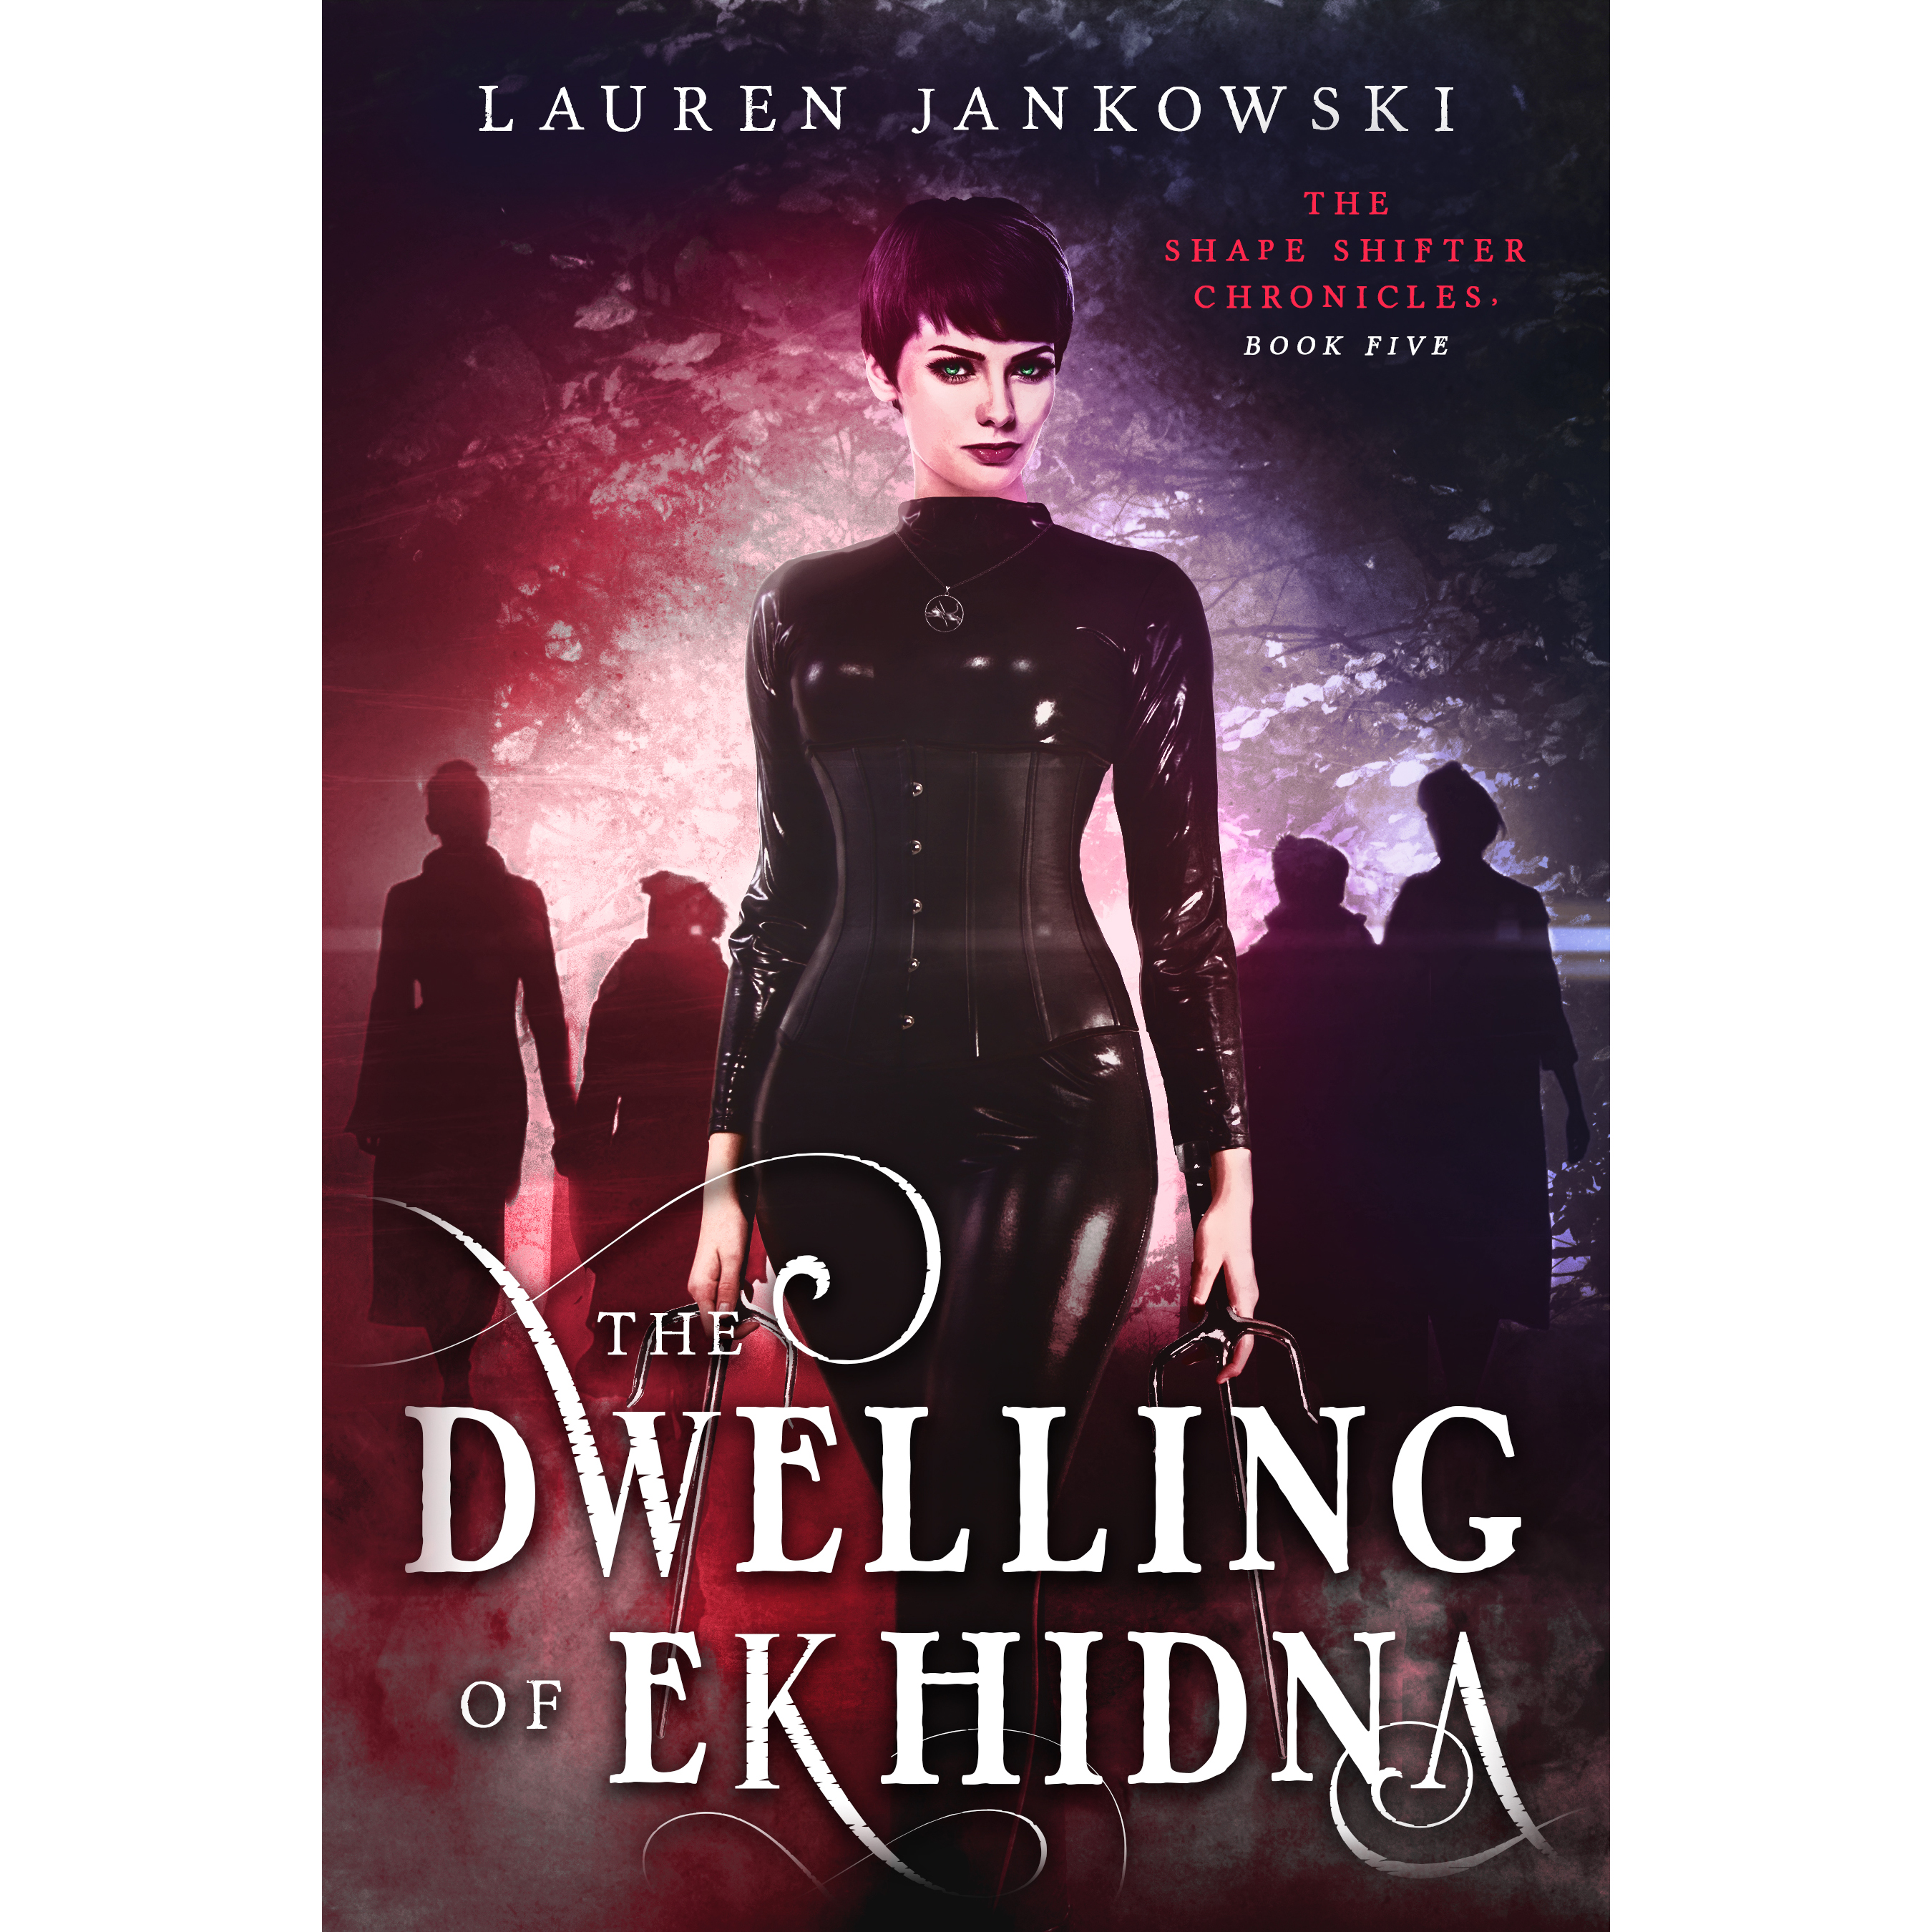 The Dwelling of Ekhidna